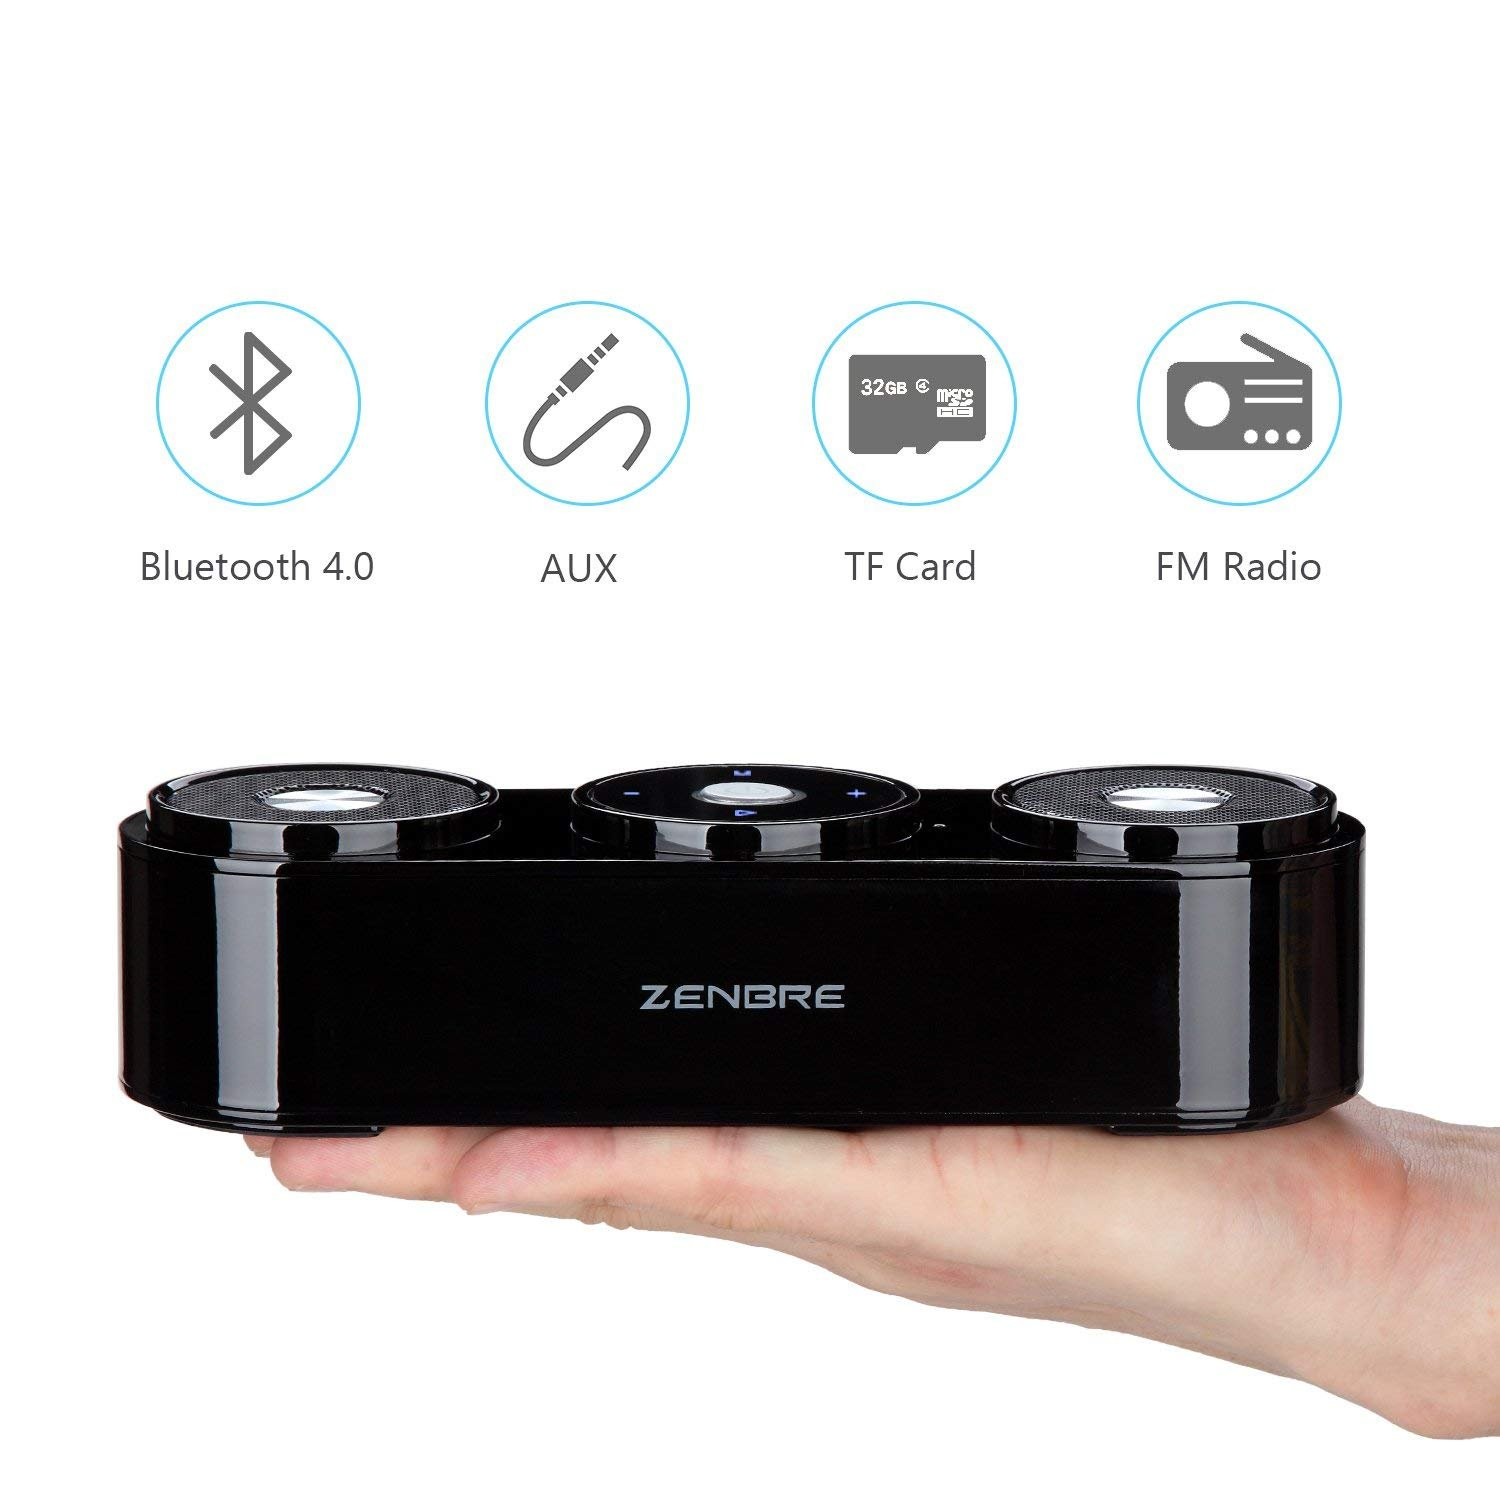 Bluetooth Speakers, ZENBRE Z3 10W Wireless Computer Speakers with 20h Playtime, Portable Speaker with Dual-Driver Enhanced Bass Resonator (Black) by ZENBRE (Image #8)